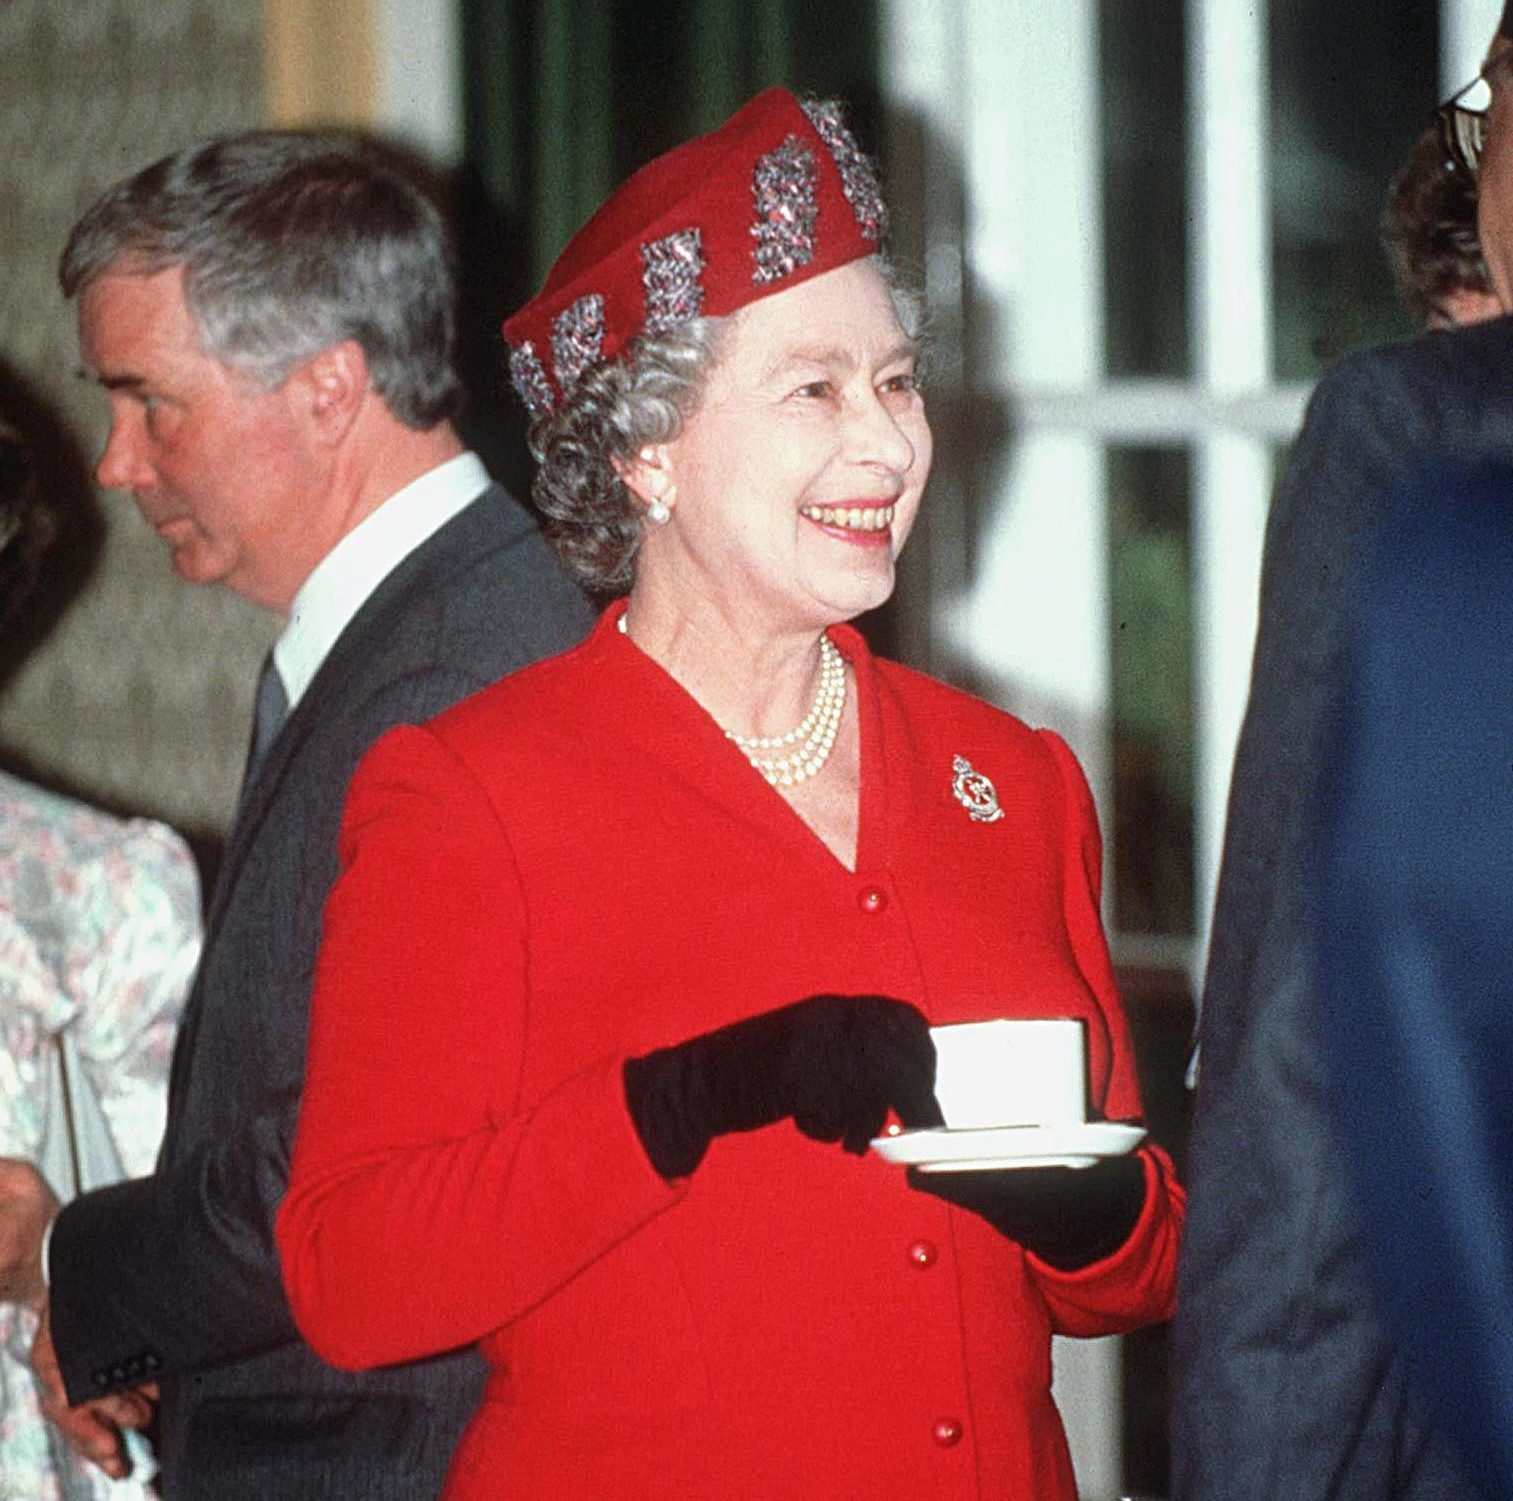 Mandatory Credit: Photo by Shutterstock (182944b) QUEEN ELIZABETH II QUEEN ELIZABETH II AT RAF RAYNHAM, BRITAIN - 1991